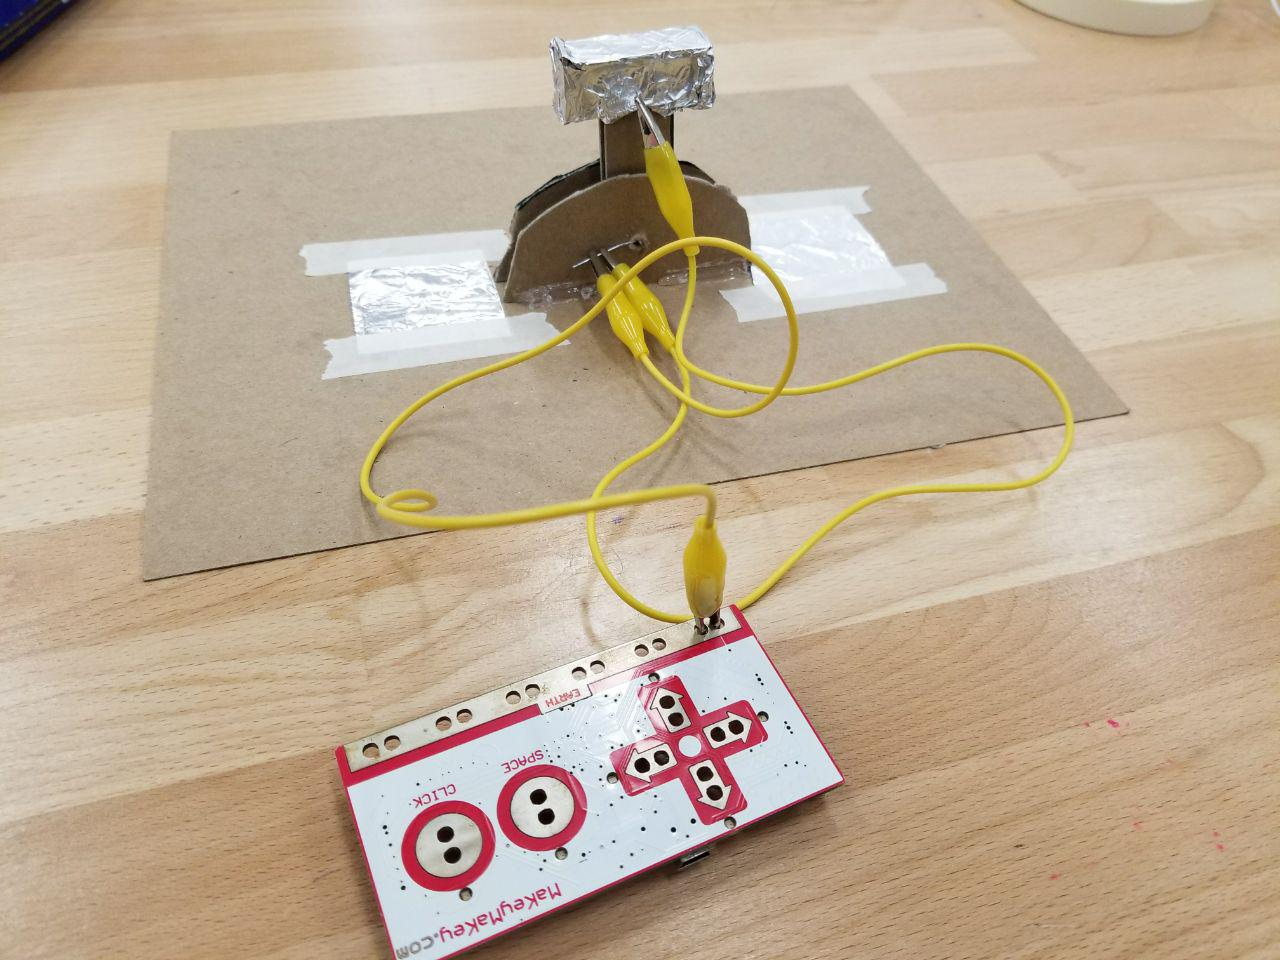 cardboard makey makey switch final version